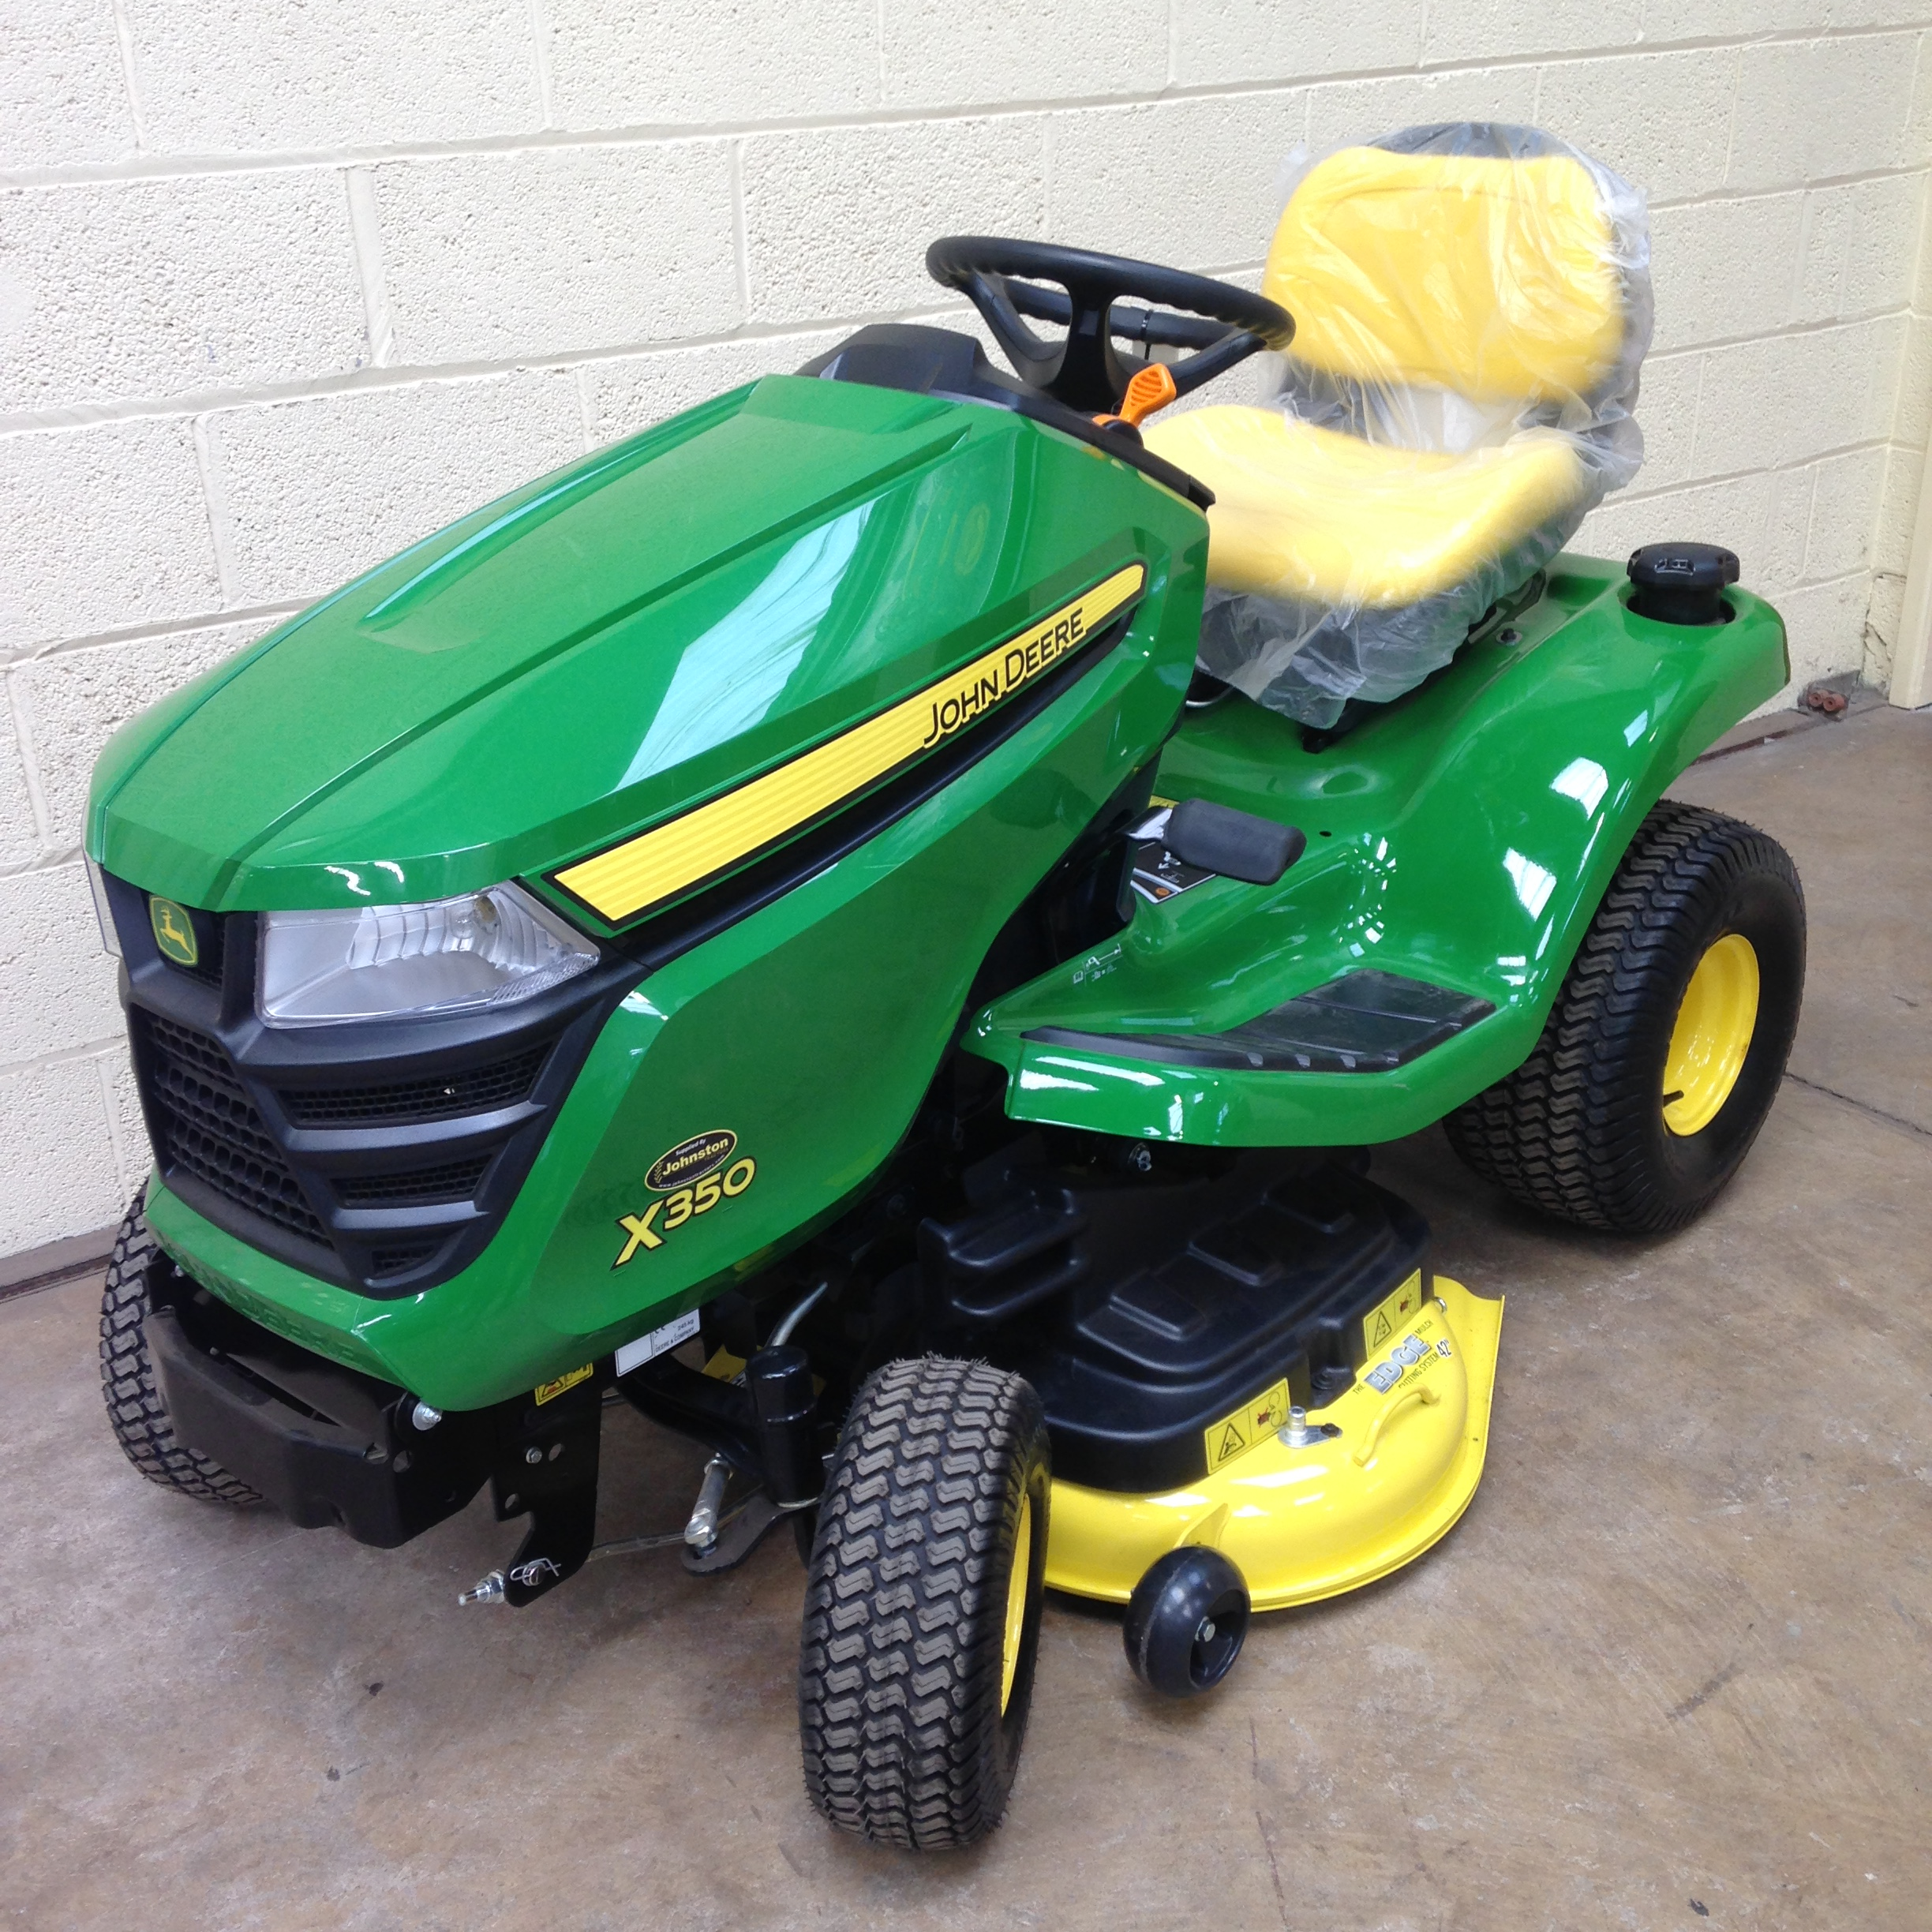 JOHN DEERE X350 LAWN TRACTOR (NEW) For Sale